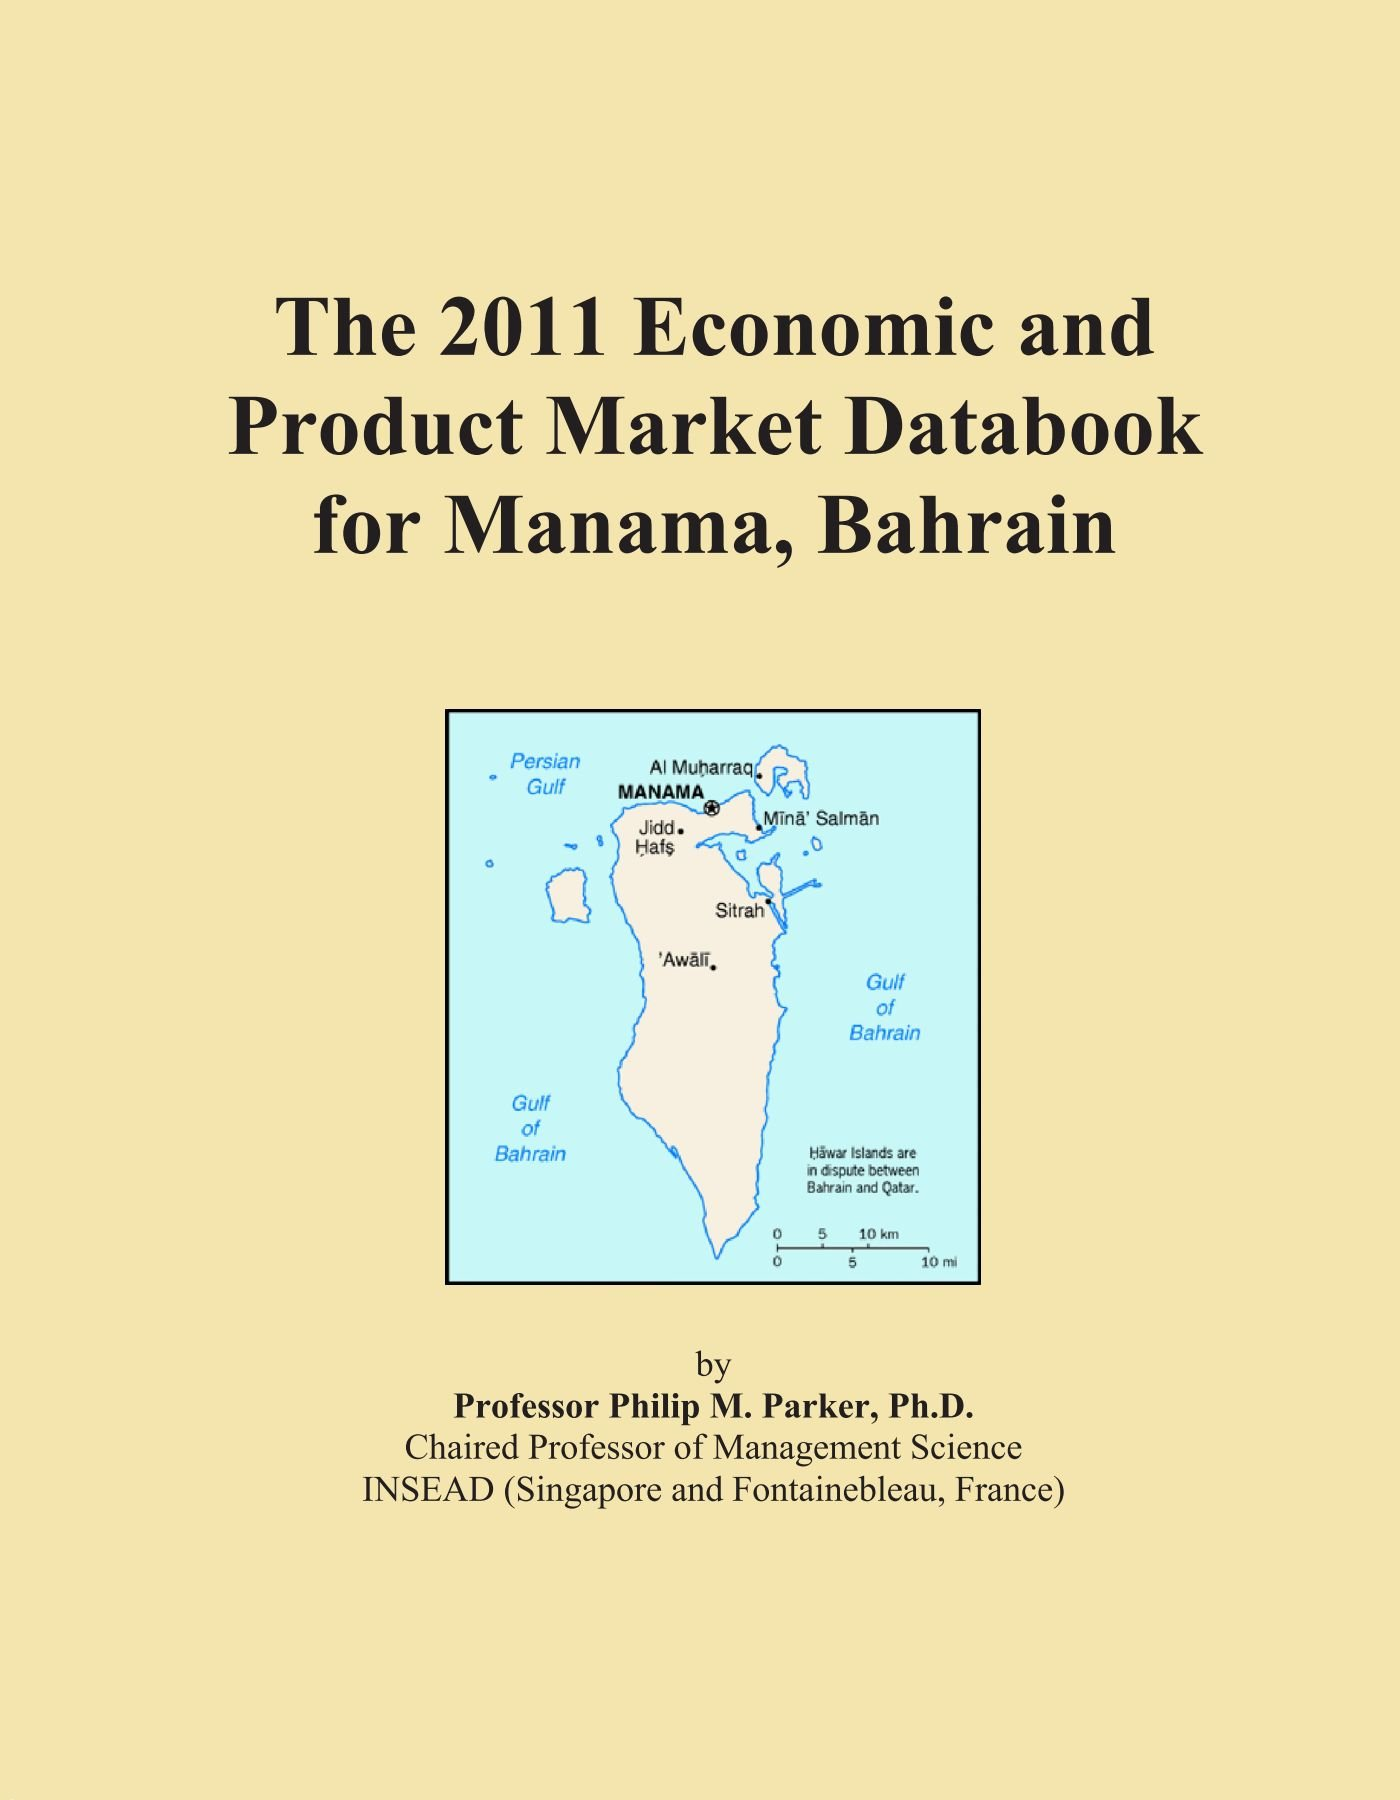 The 2011 Economic and Product Market Databook for Manama, Bahrain pdf